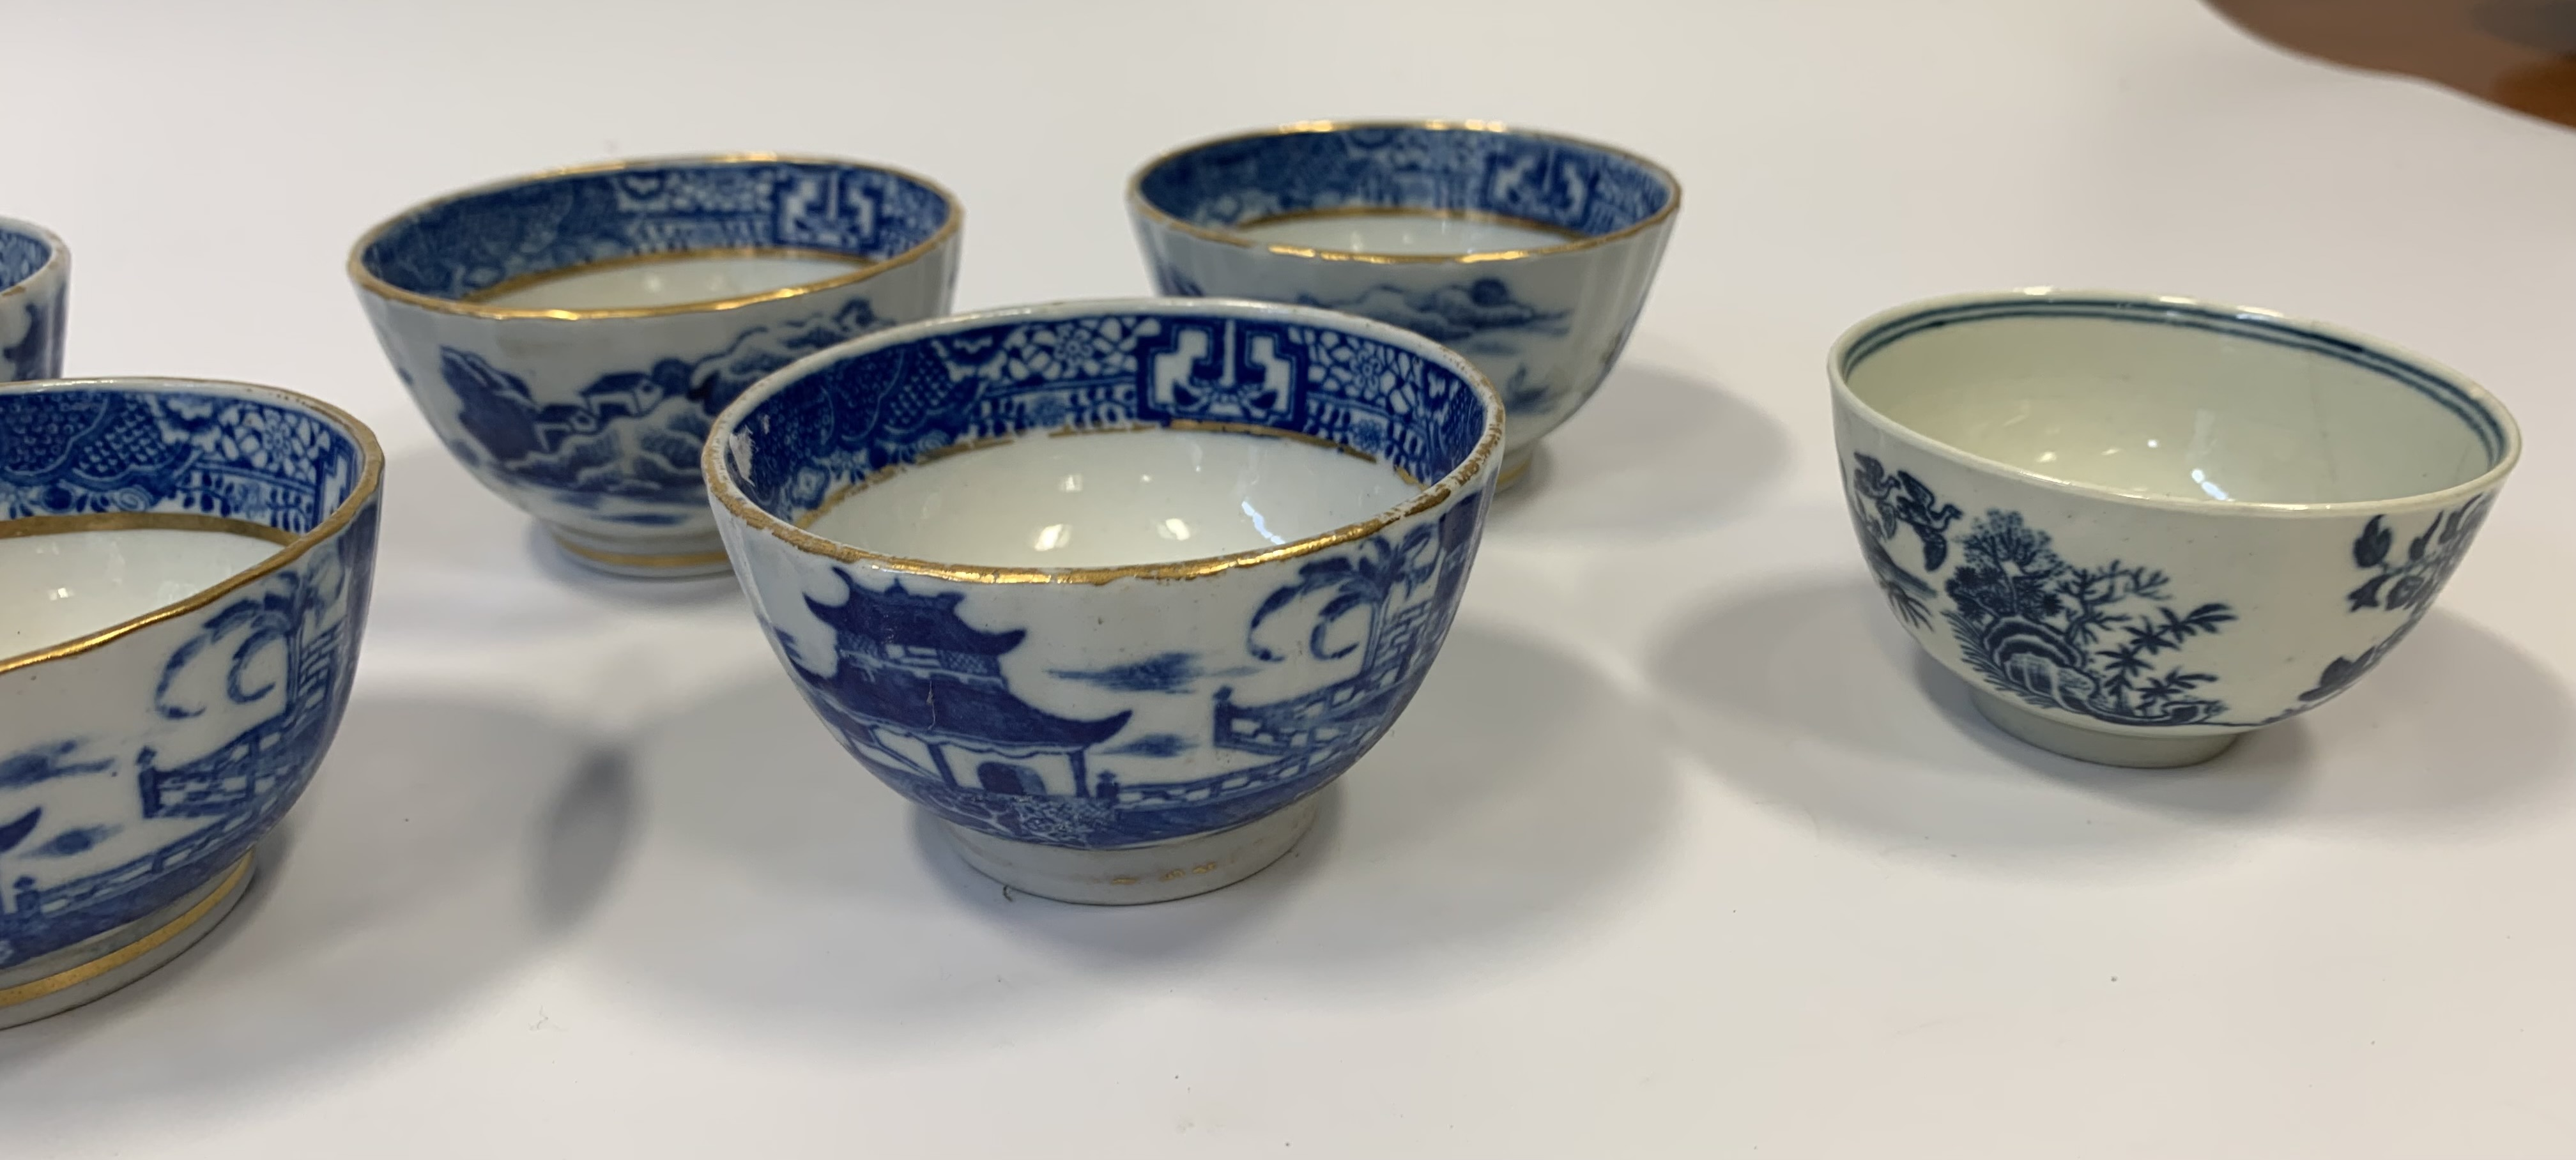 10 assorted blue/white cups - Image 5 of 7